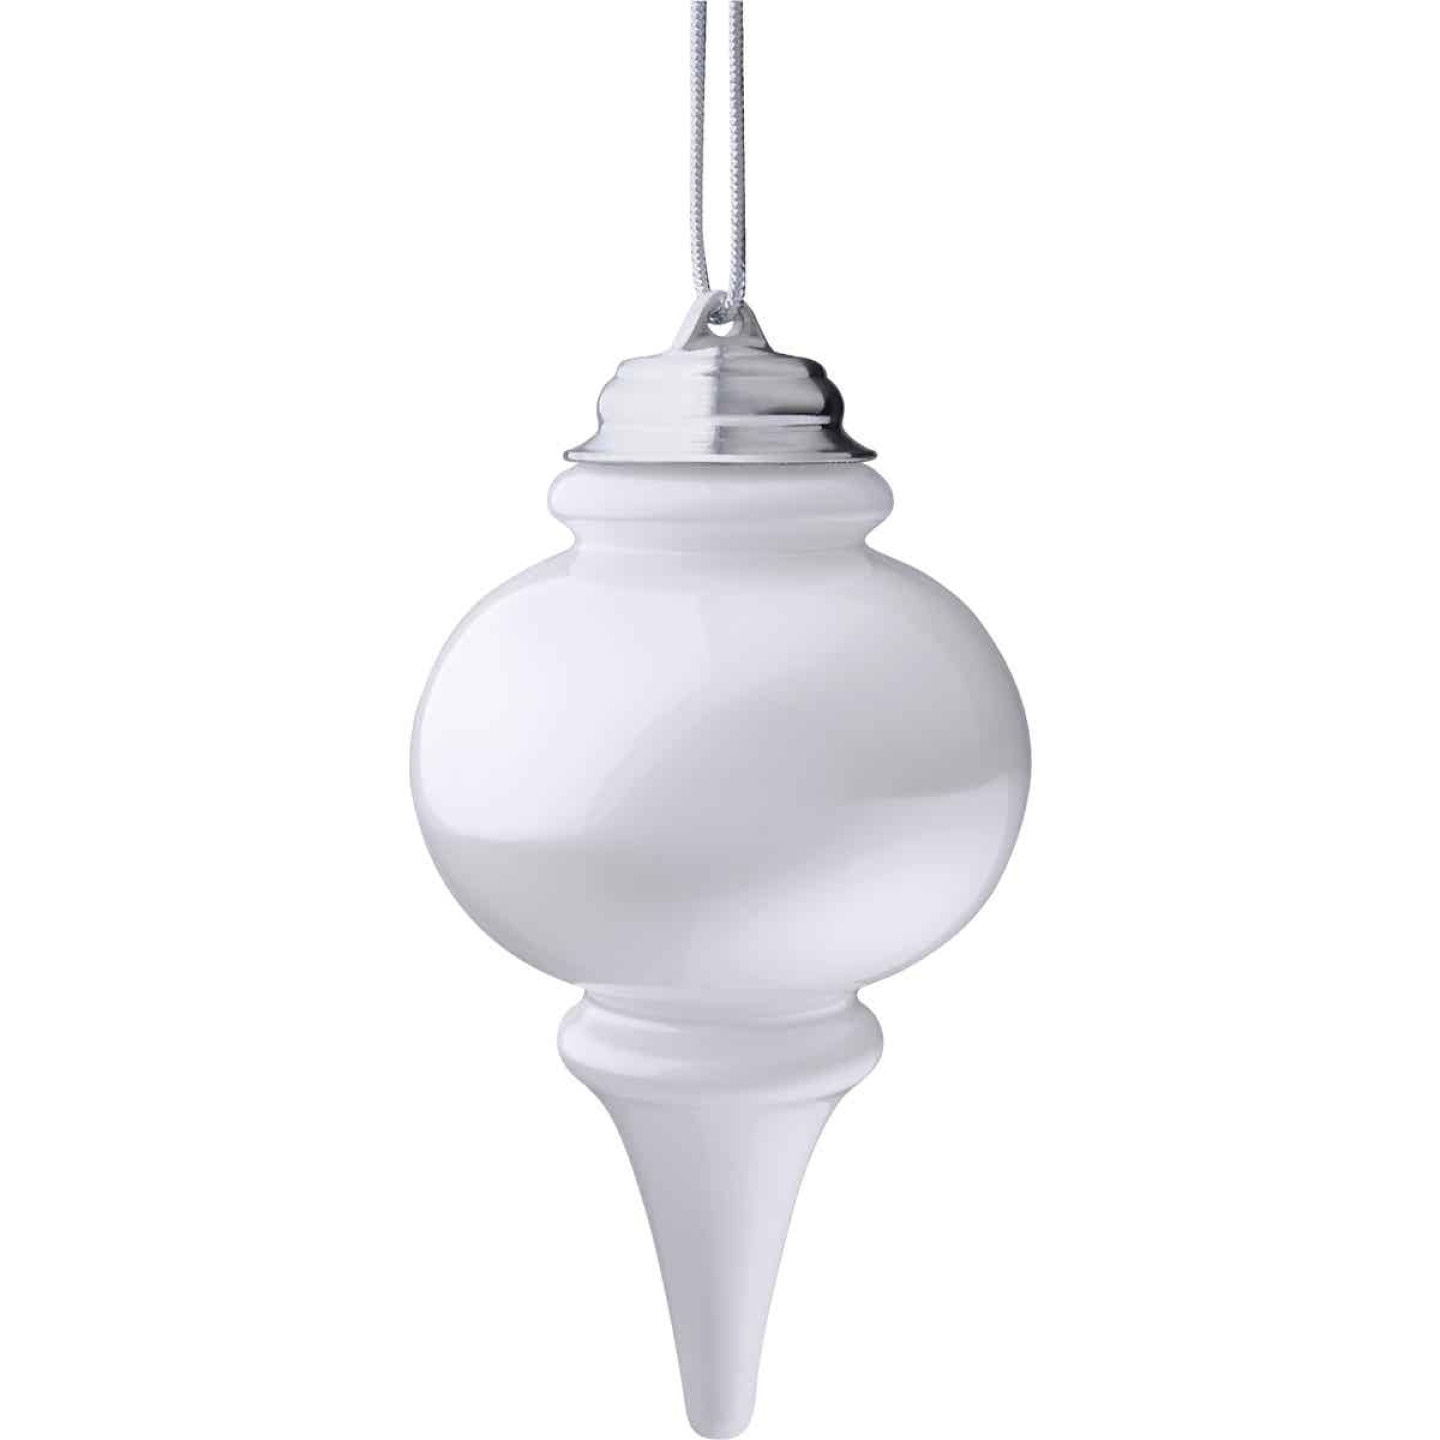 Xodus 9 In. Shatter Resistant LED Outdoor Finial Christmas Ornament Image 6